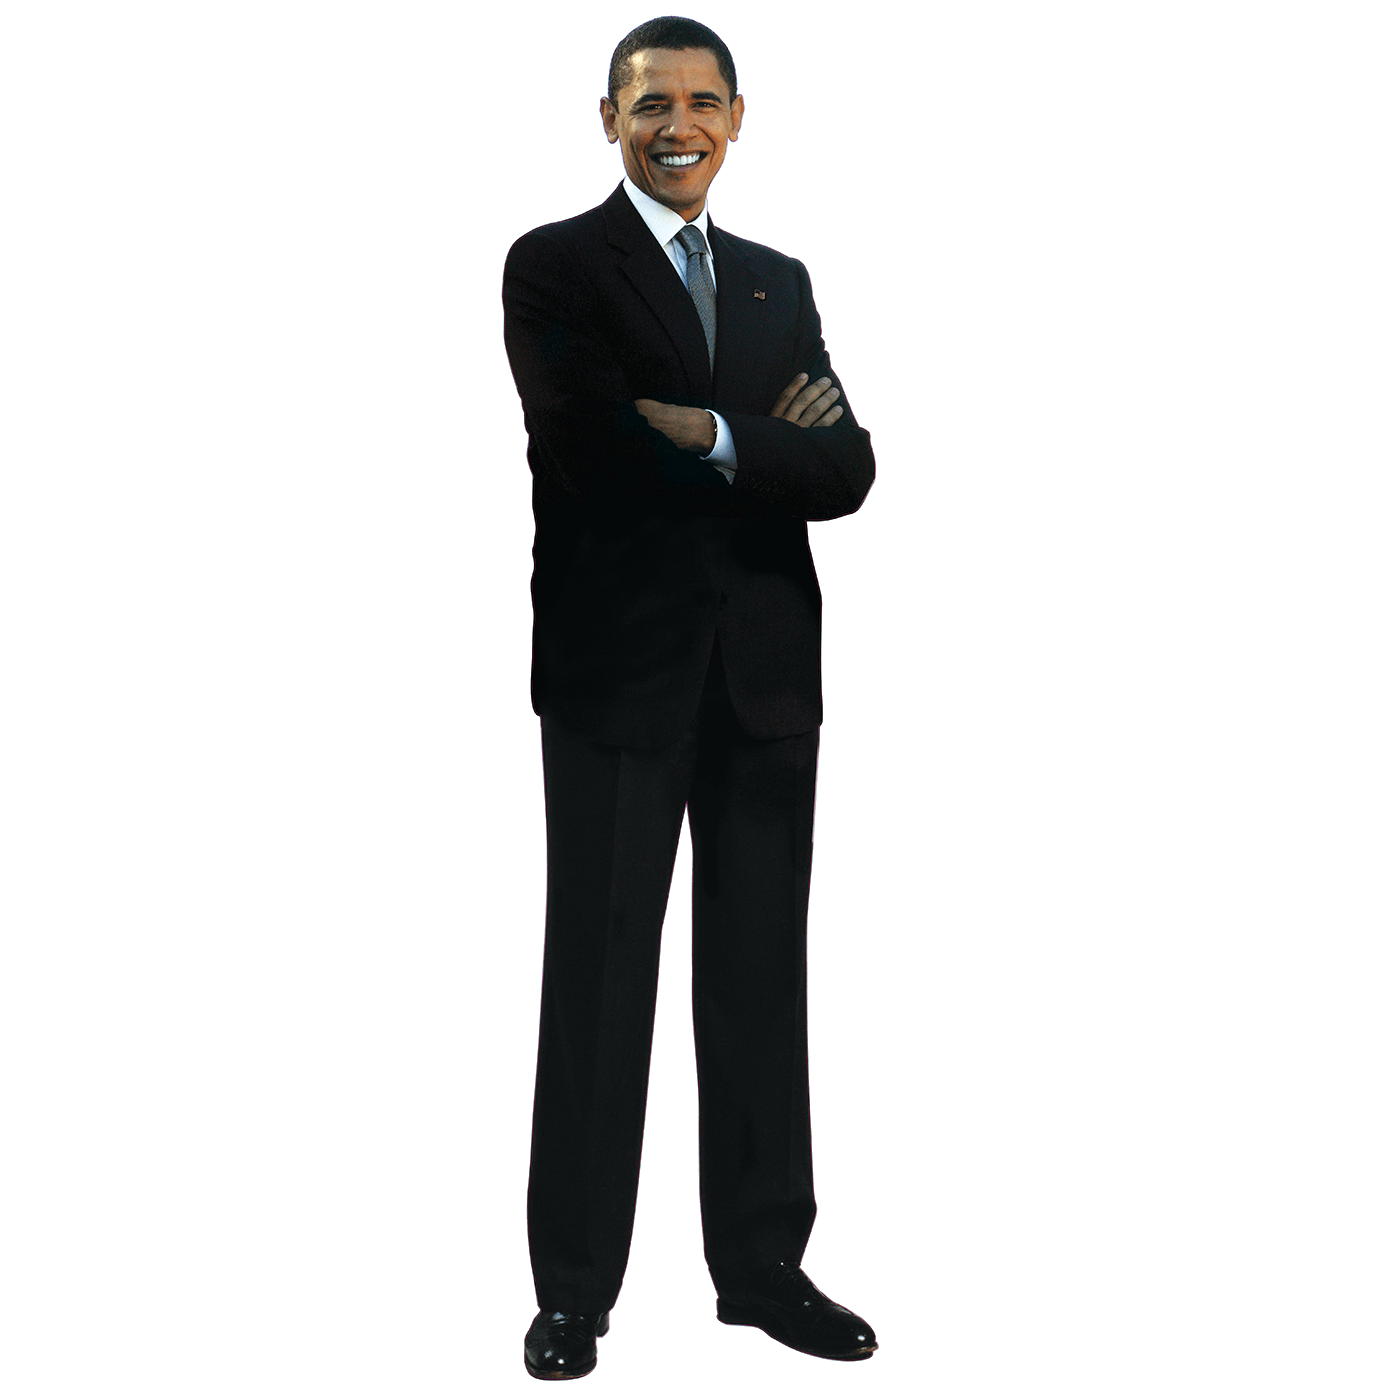 Man standing png. Obama transparent stickpng